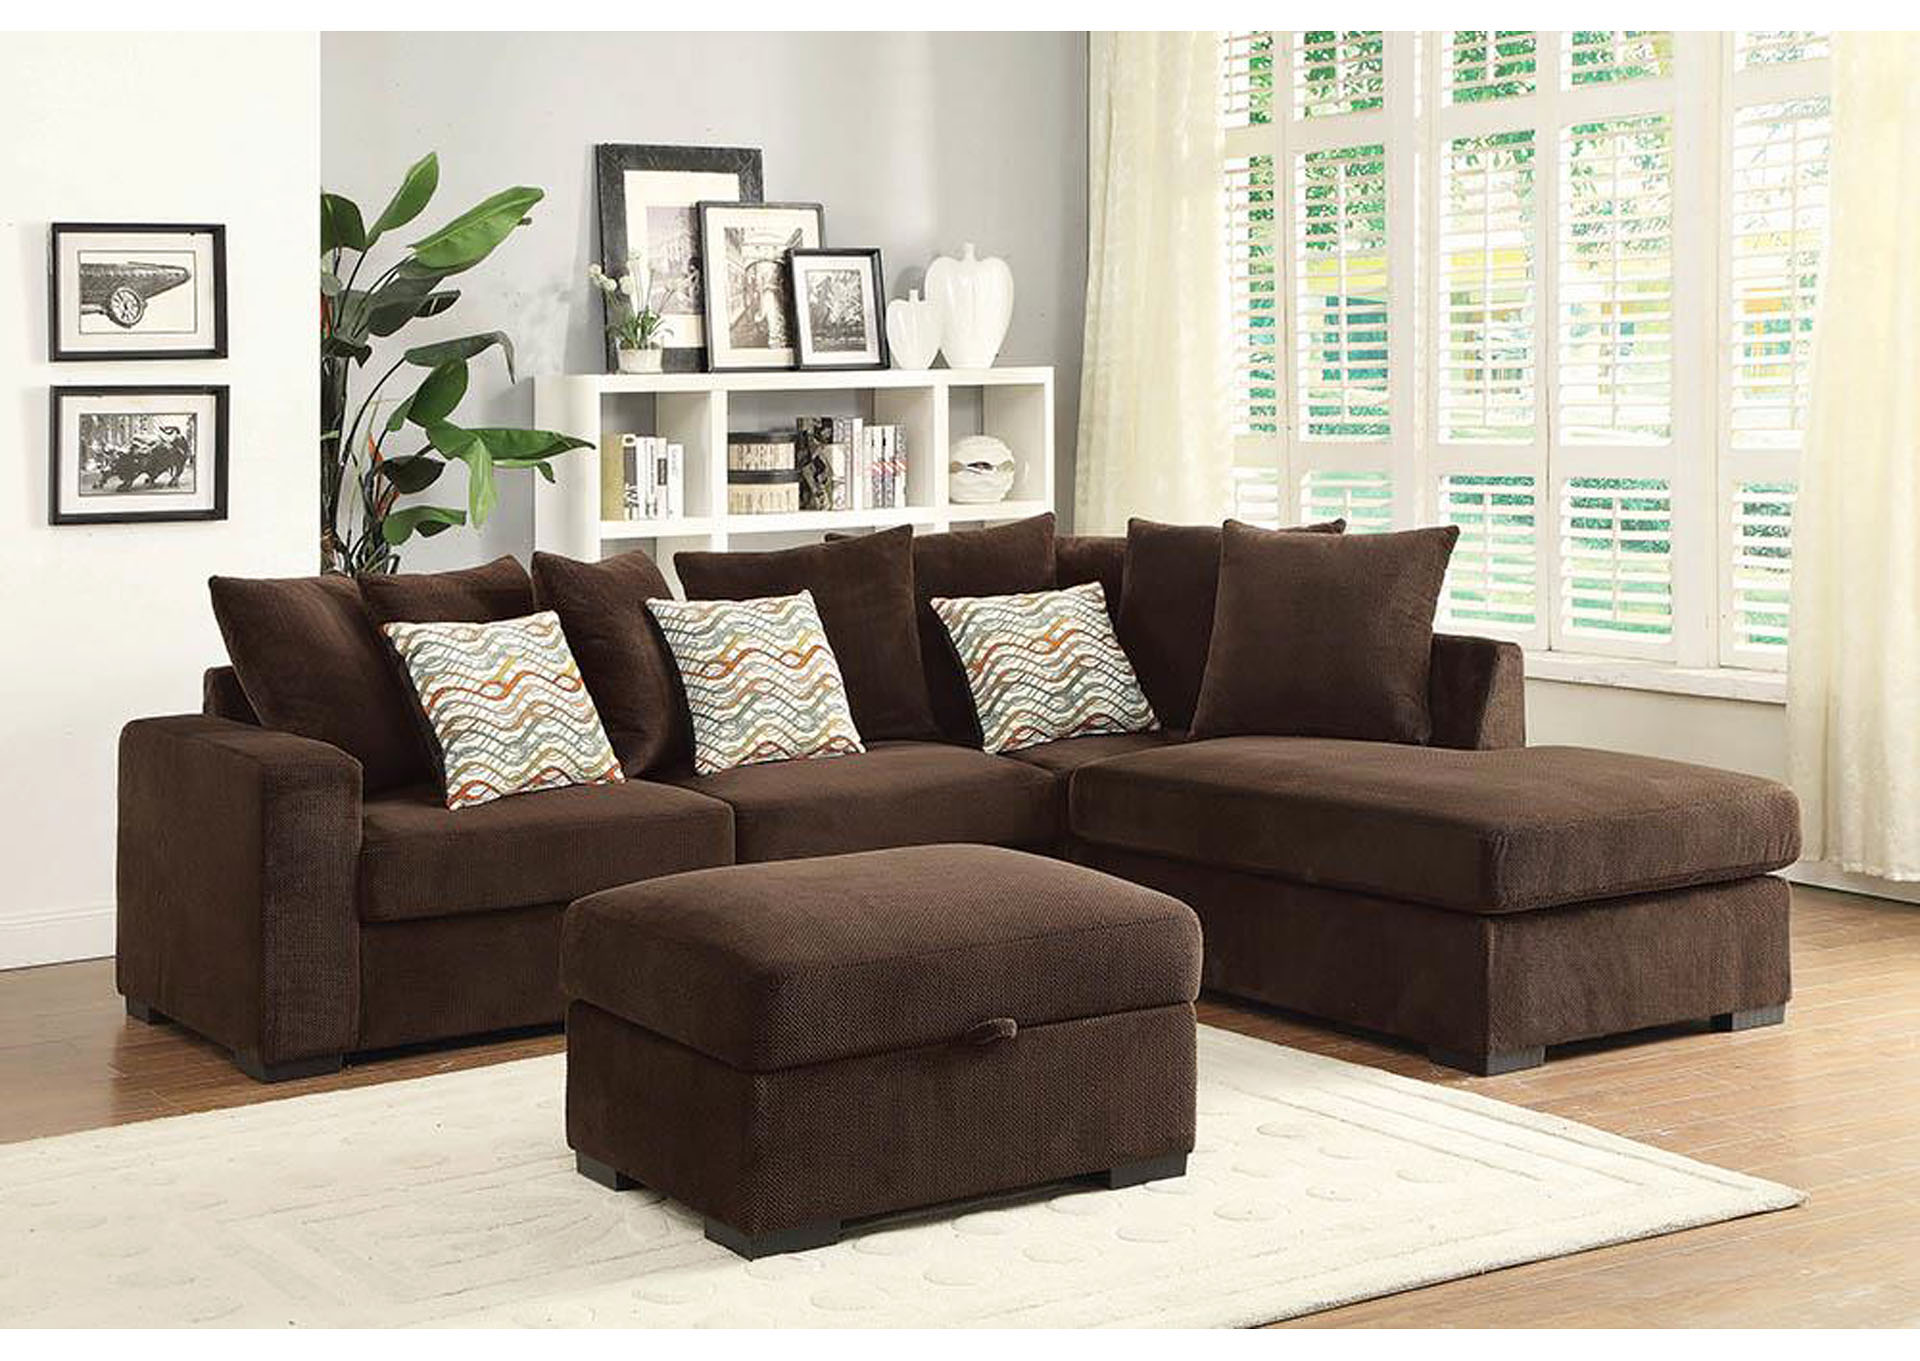 Furniture Stores In Miami 1 Discount Ashley Home Furniture Brown Sectional